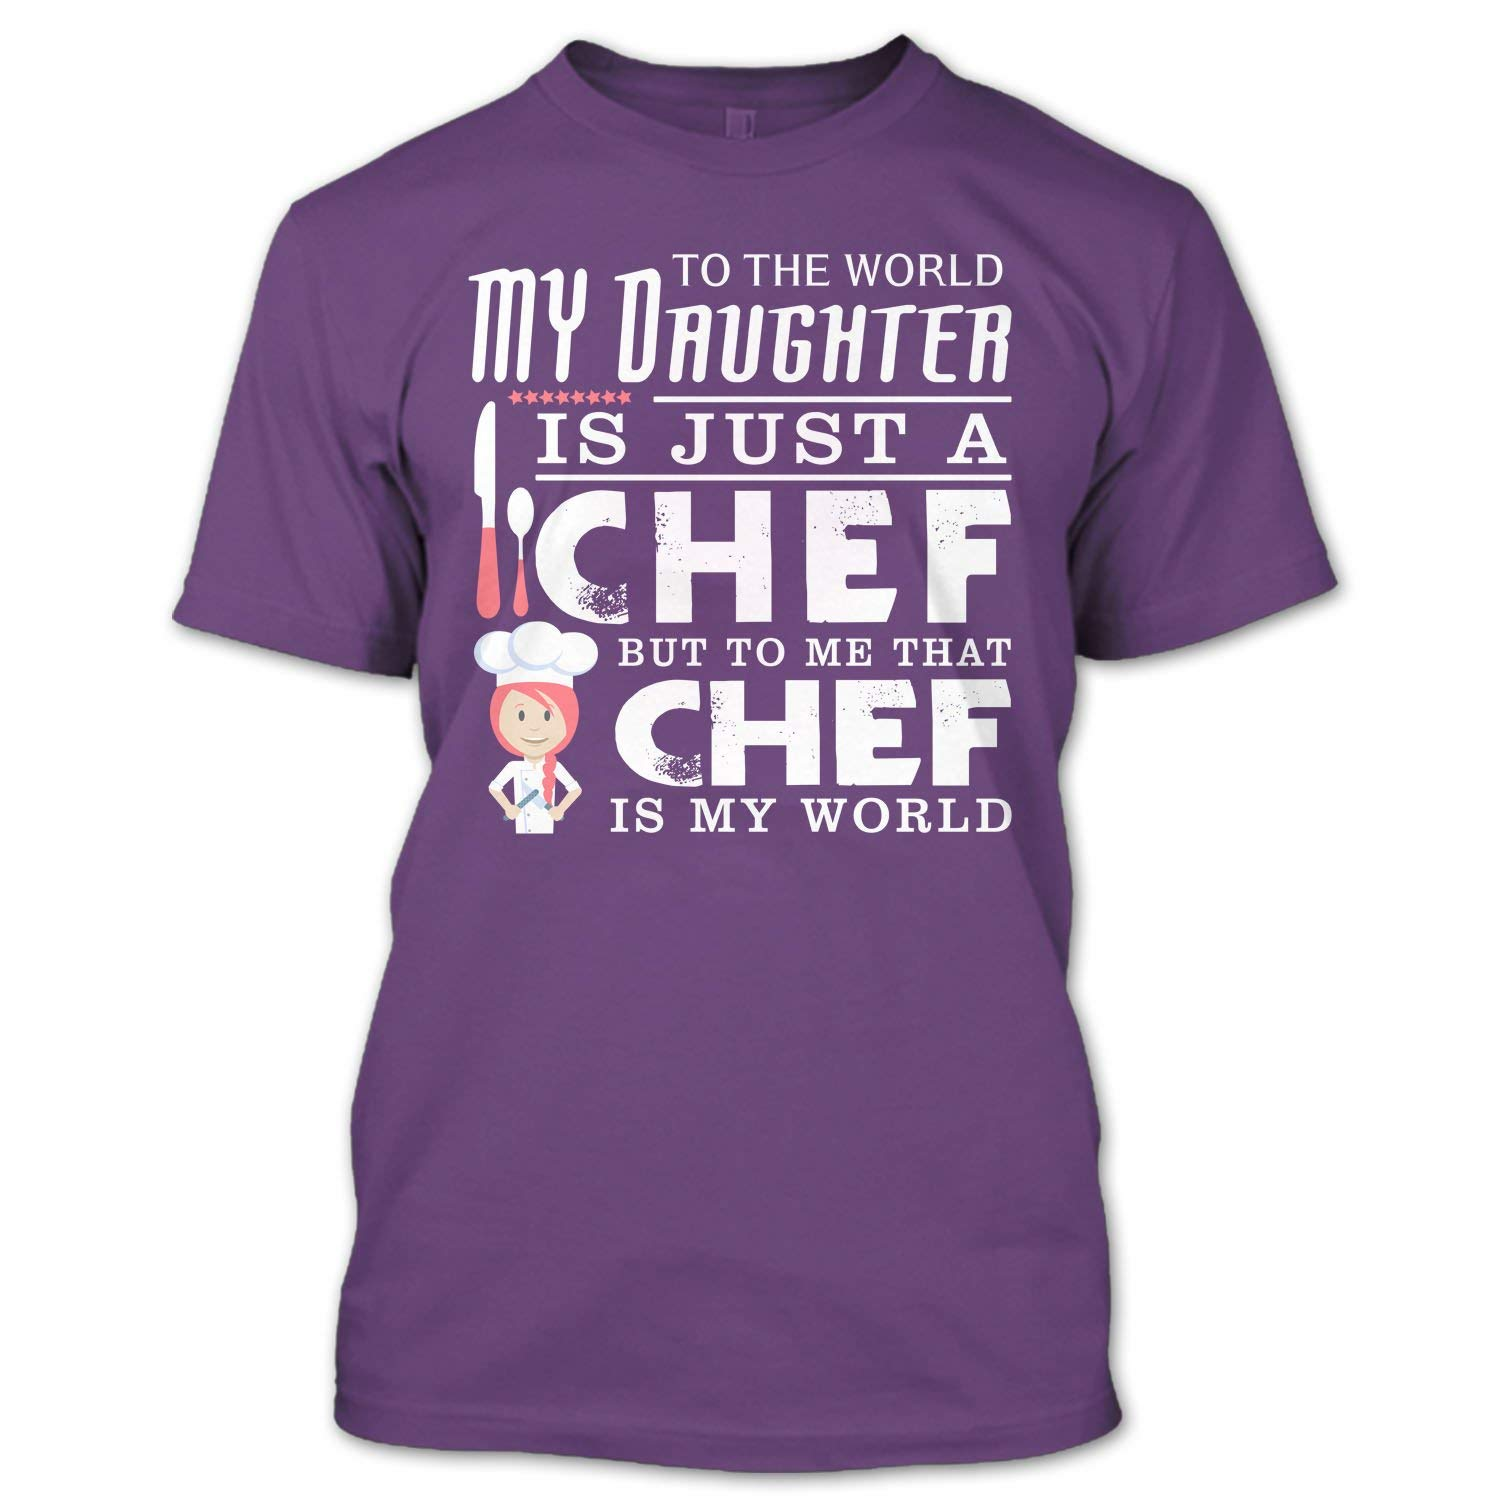 To The World My Daughter Is Just A Chef T Shirt, But To Me That Chef Is My World T Shirt